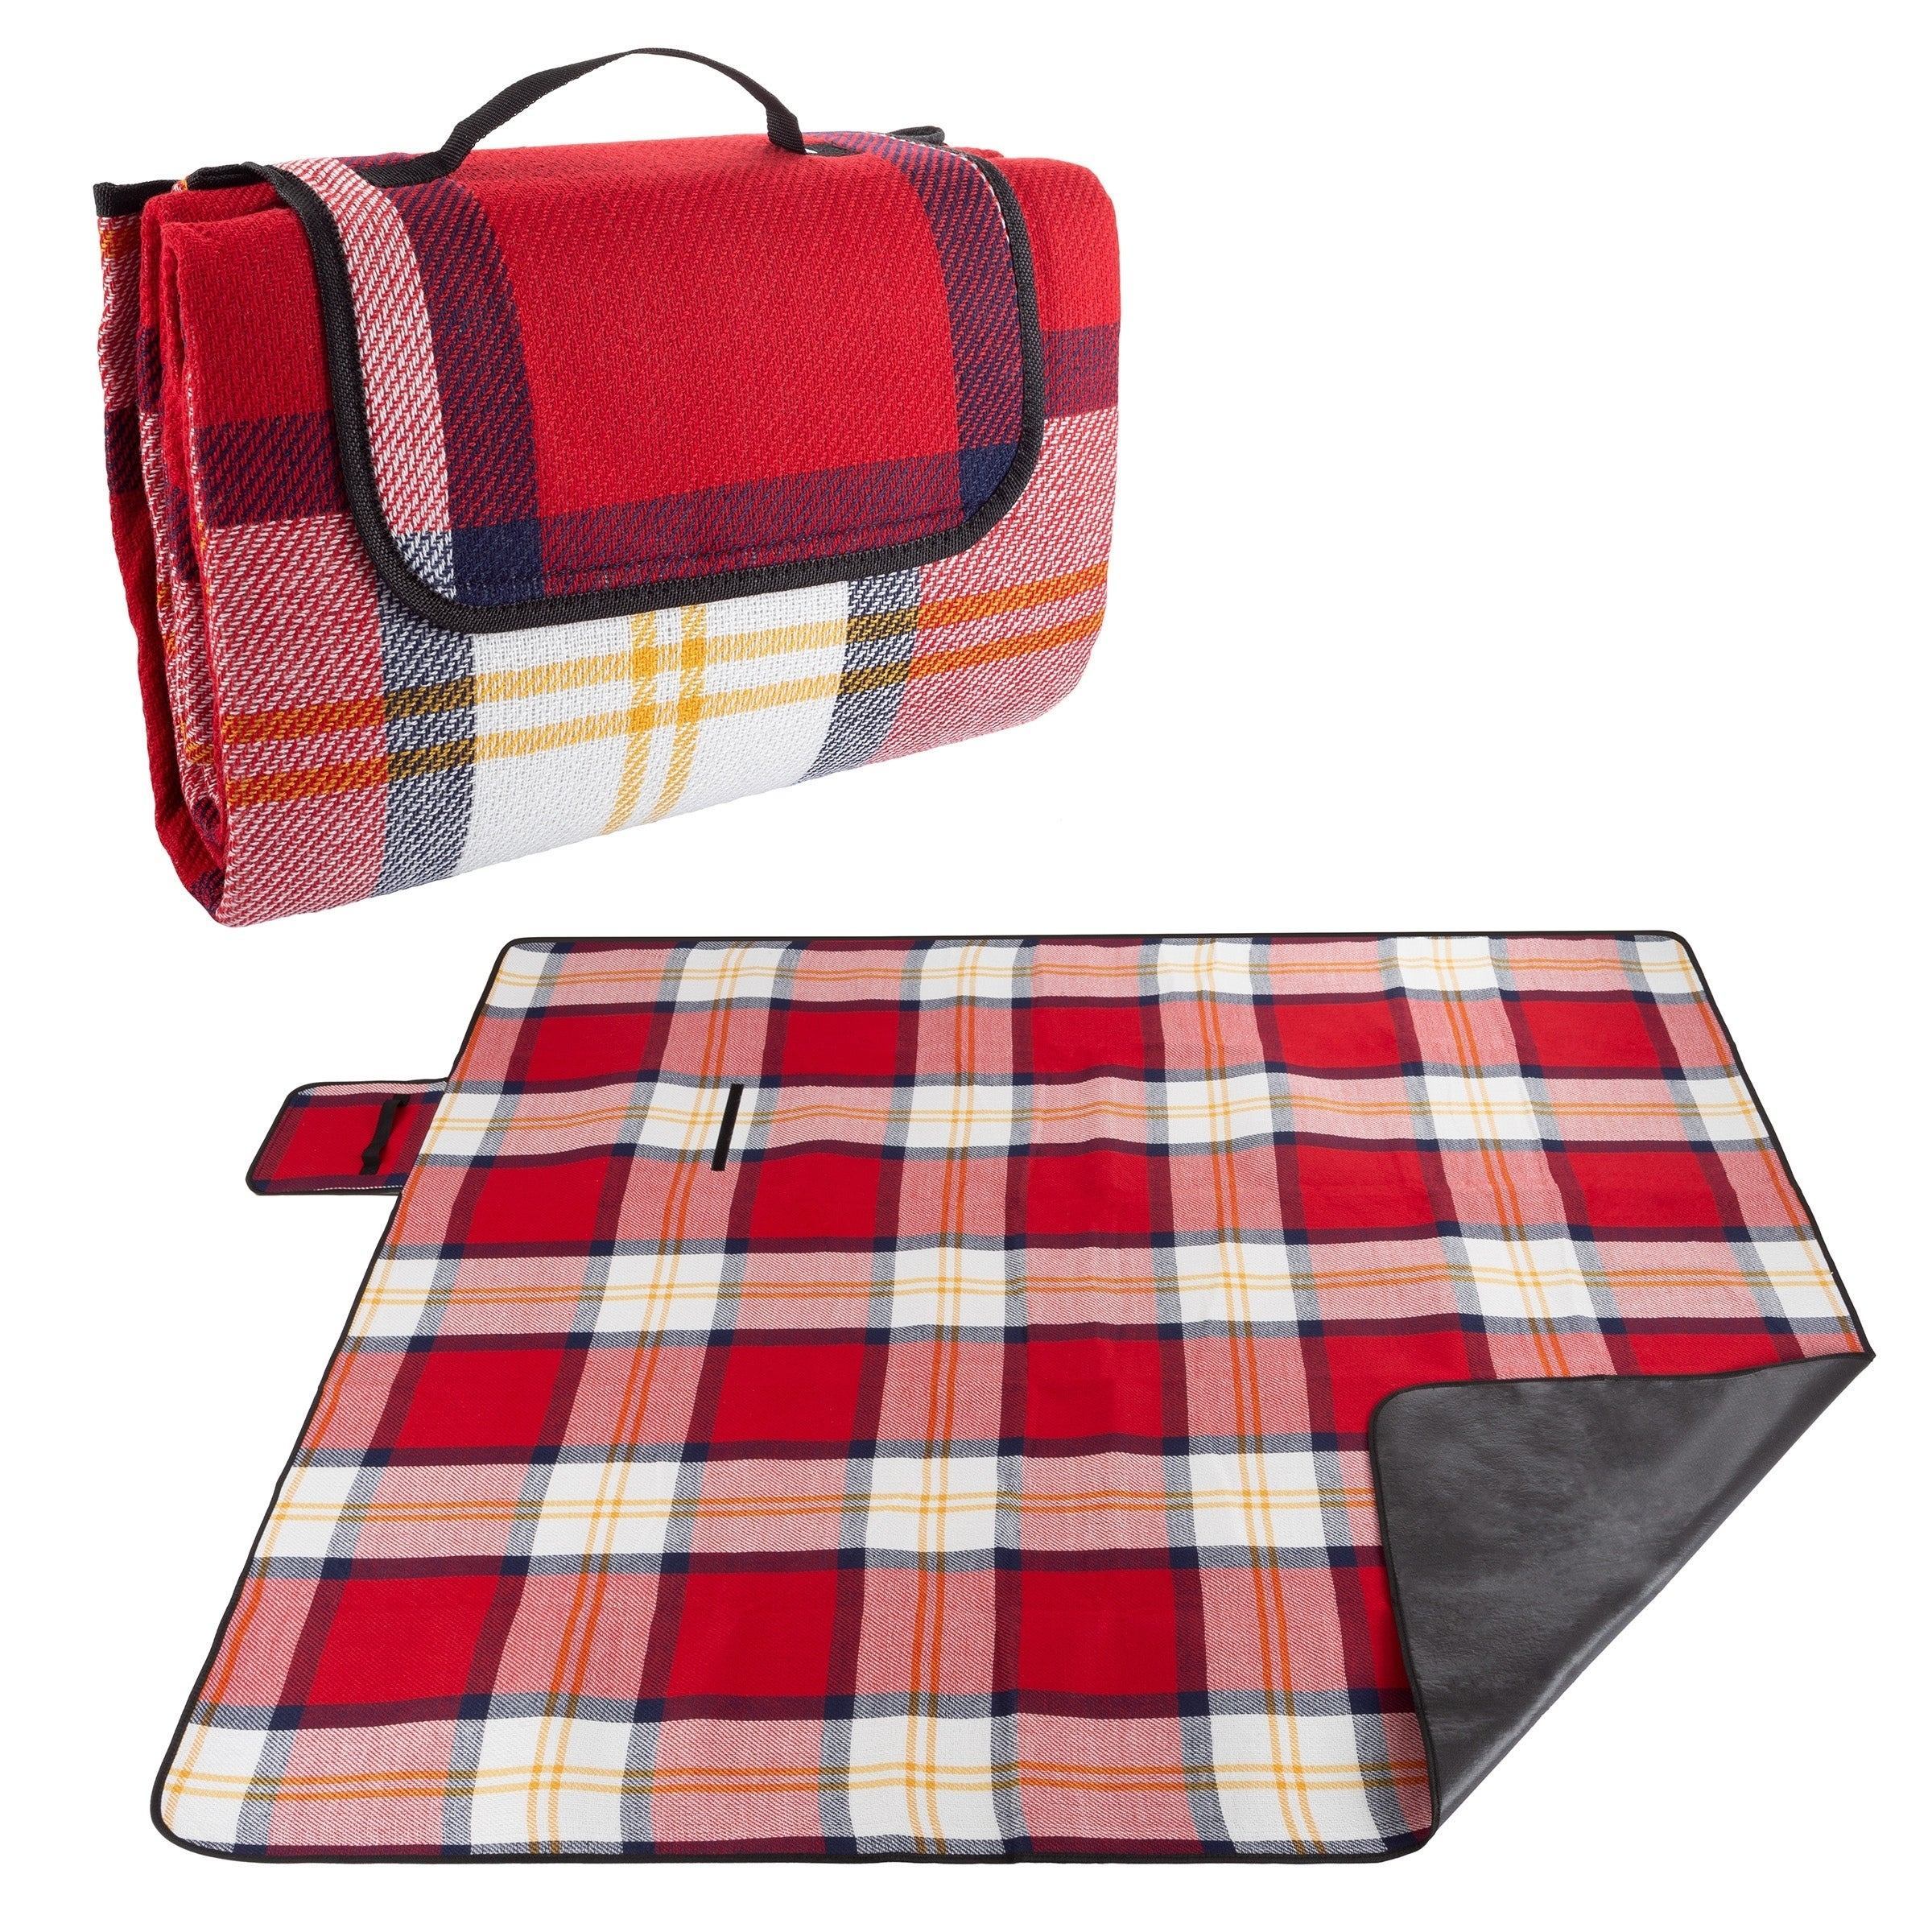 70 x 80 Bag, Blue Picnic Blanket Waterproof SandProof with Picnic Recipes Book